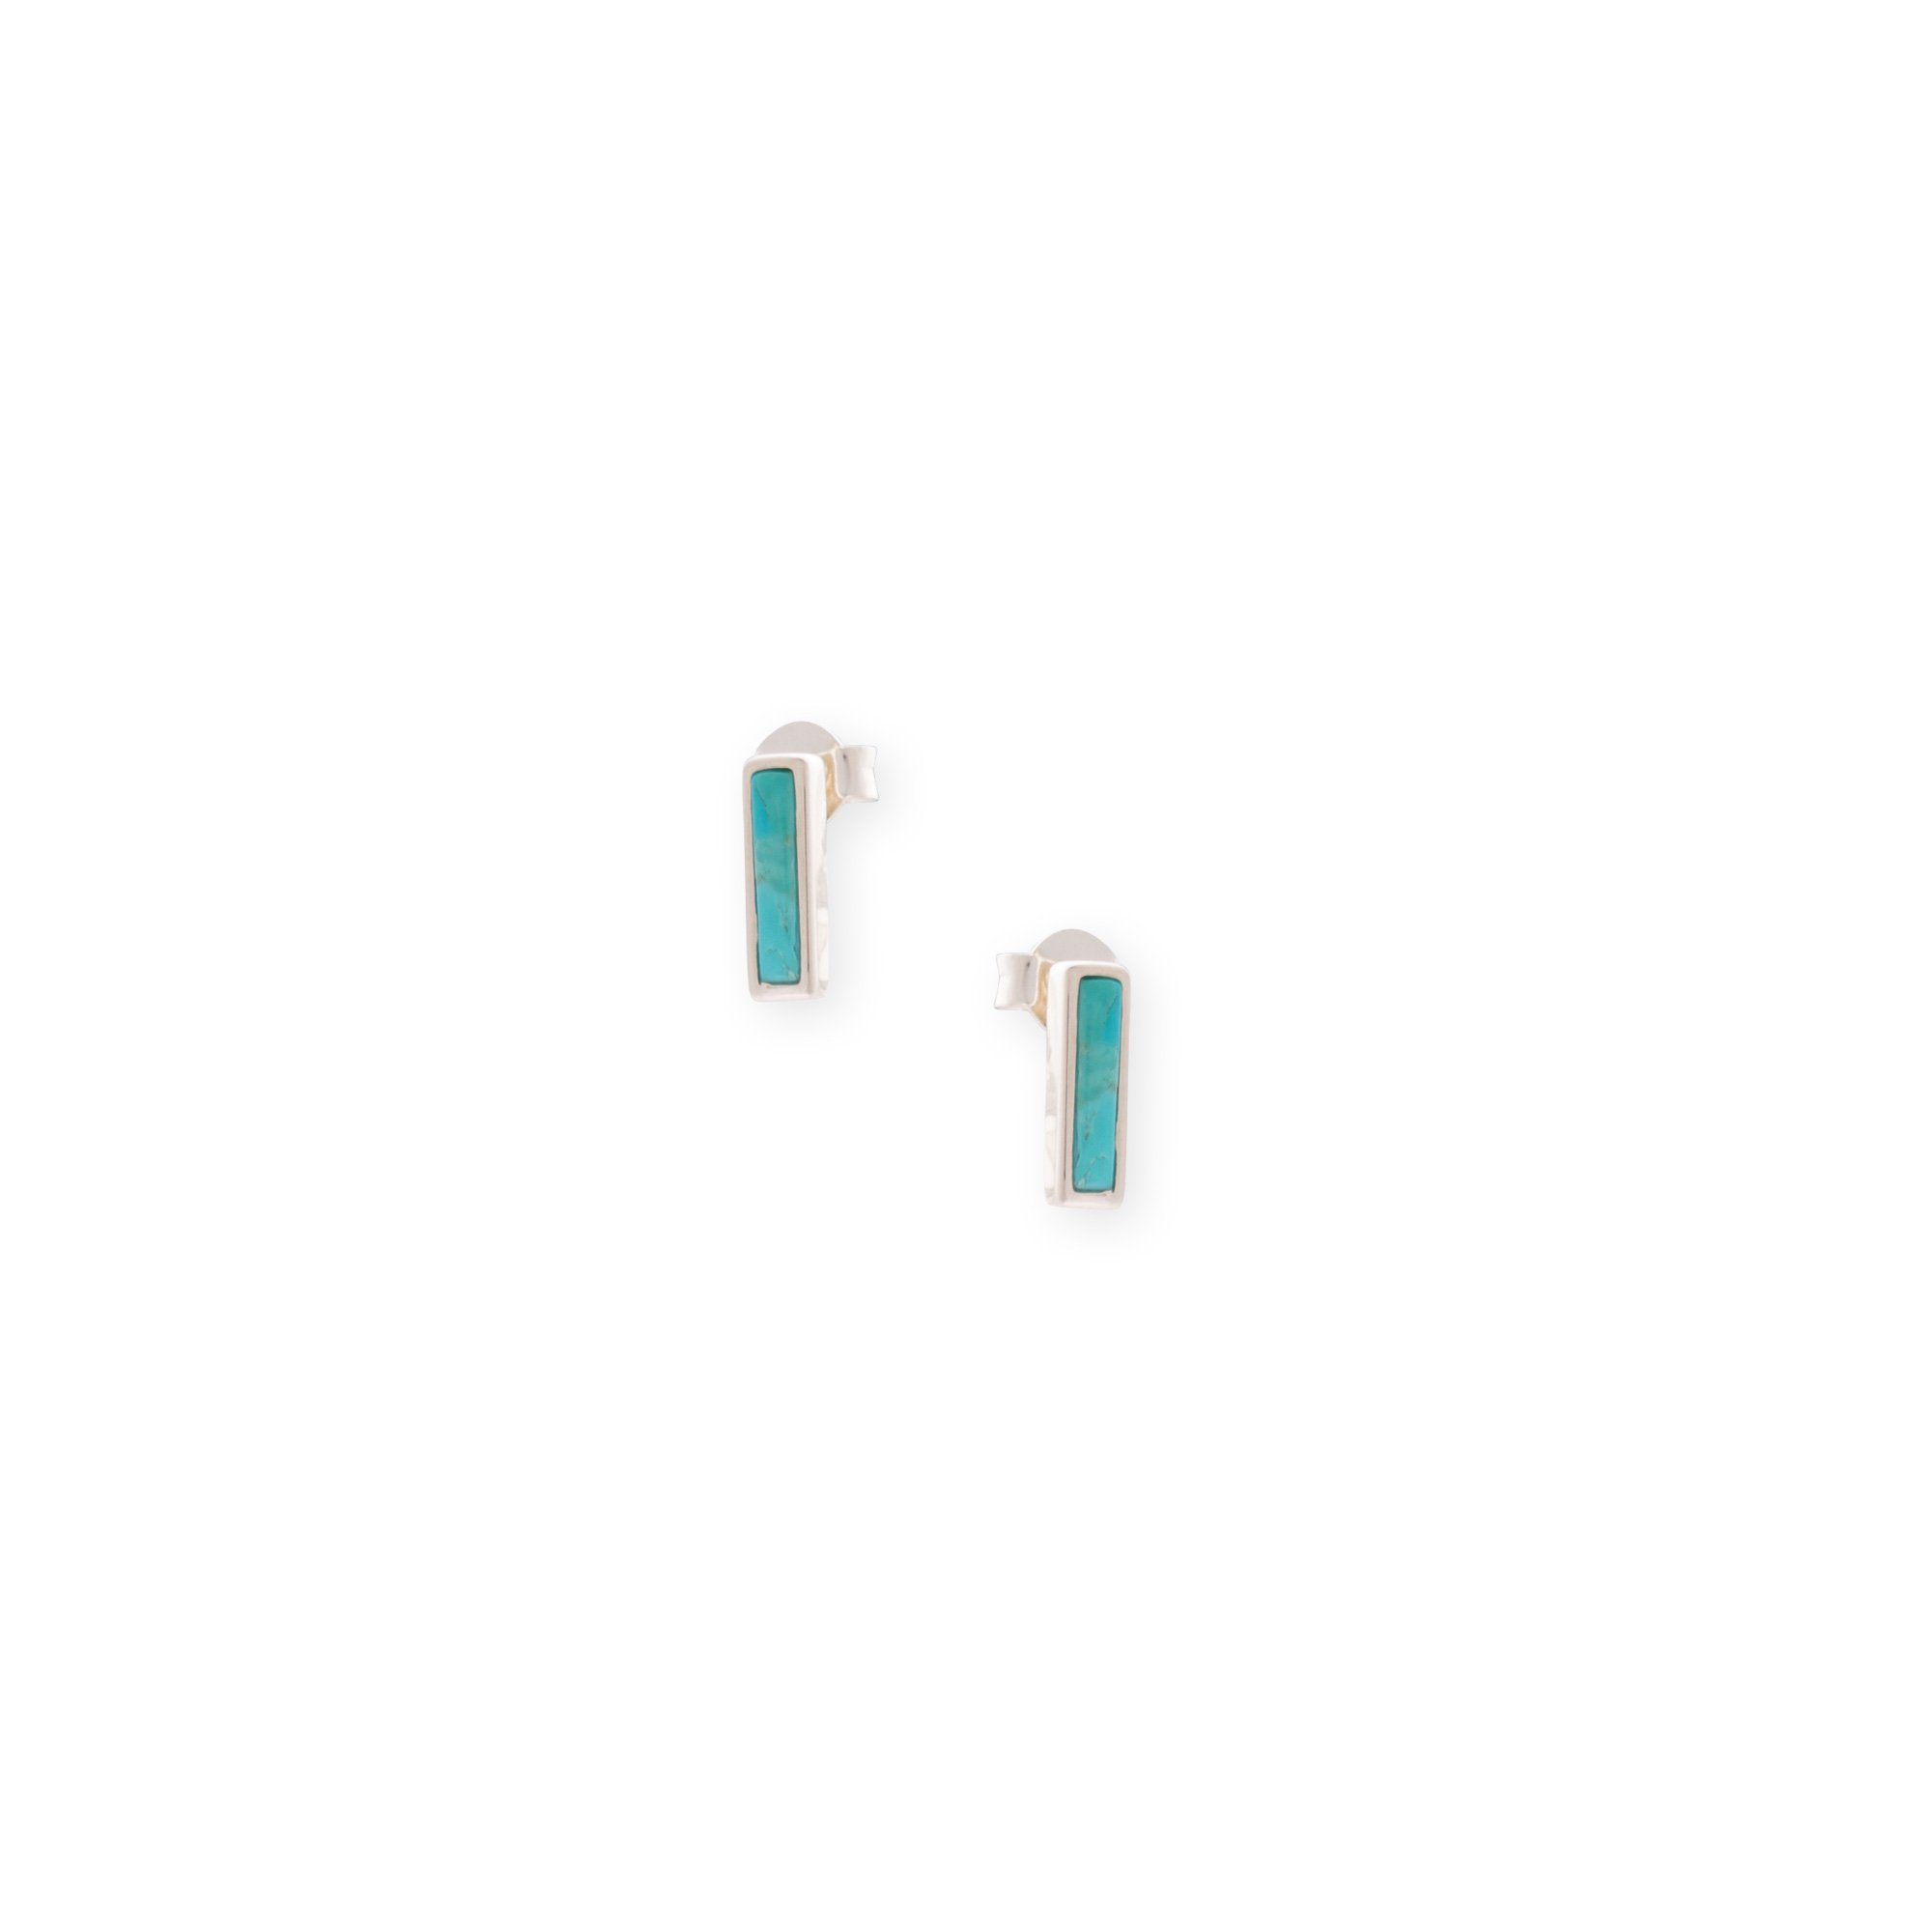 tif clarkes stud turquoise earrings e jewelers shop lika behar gxcdtq my